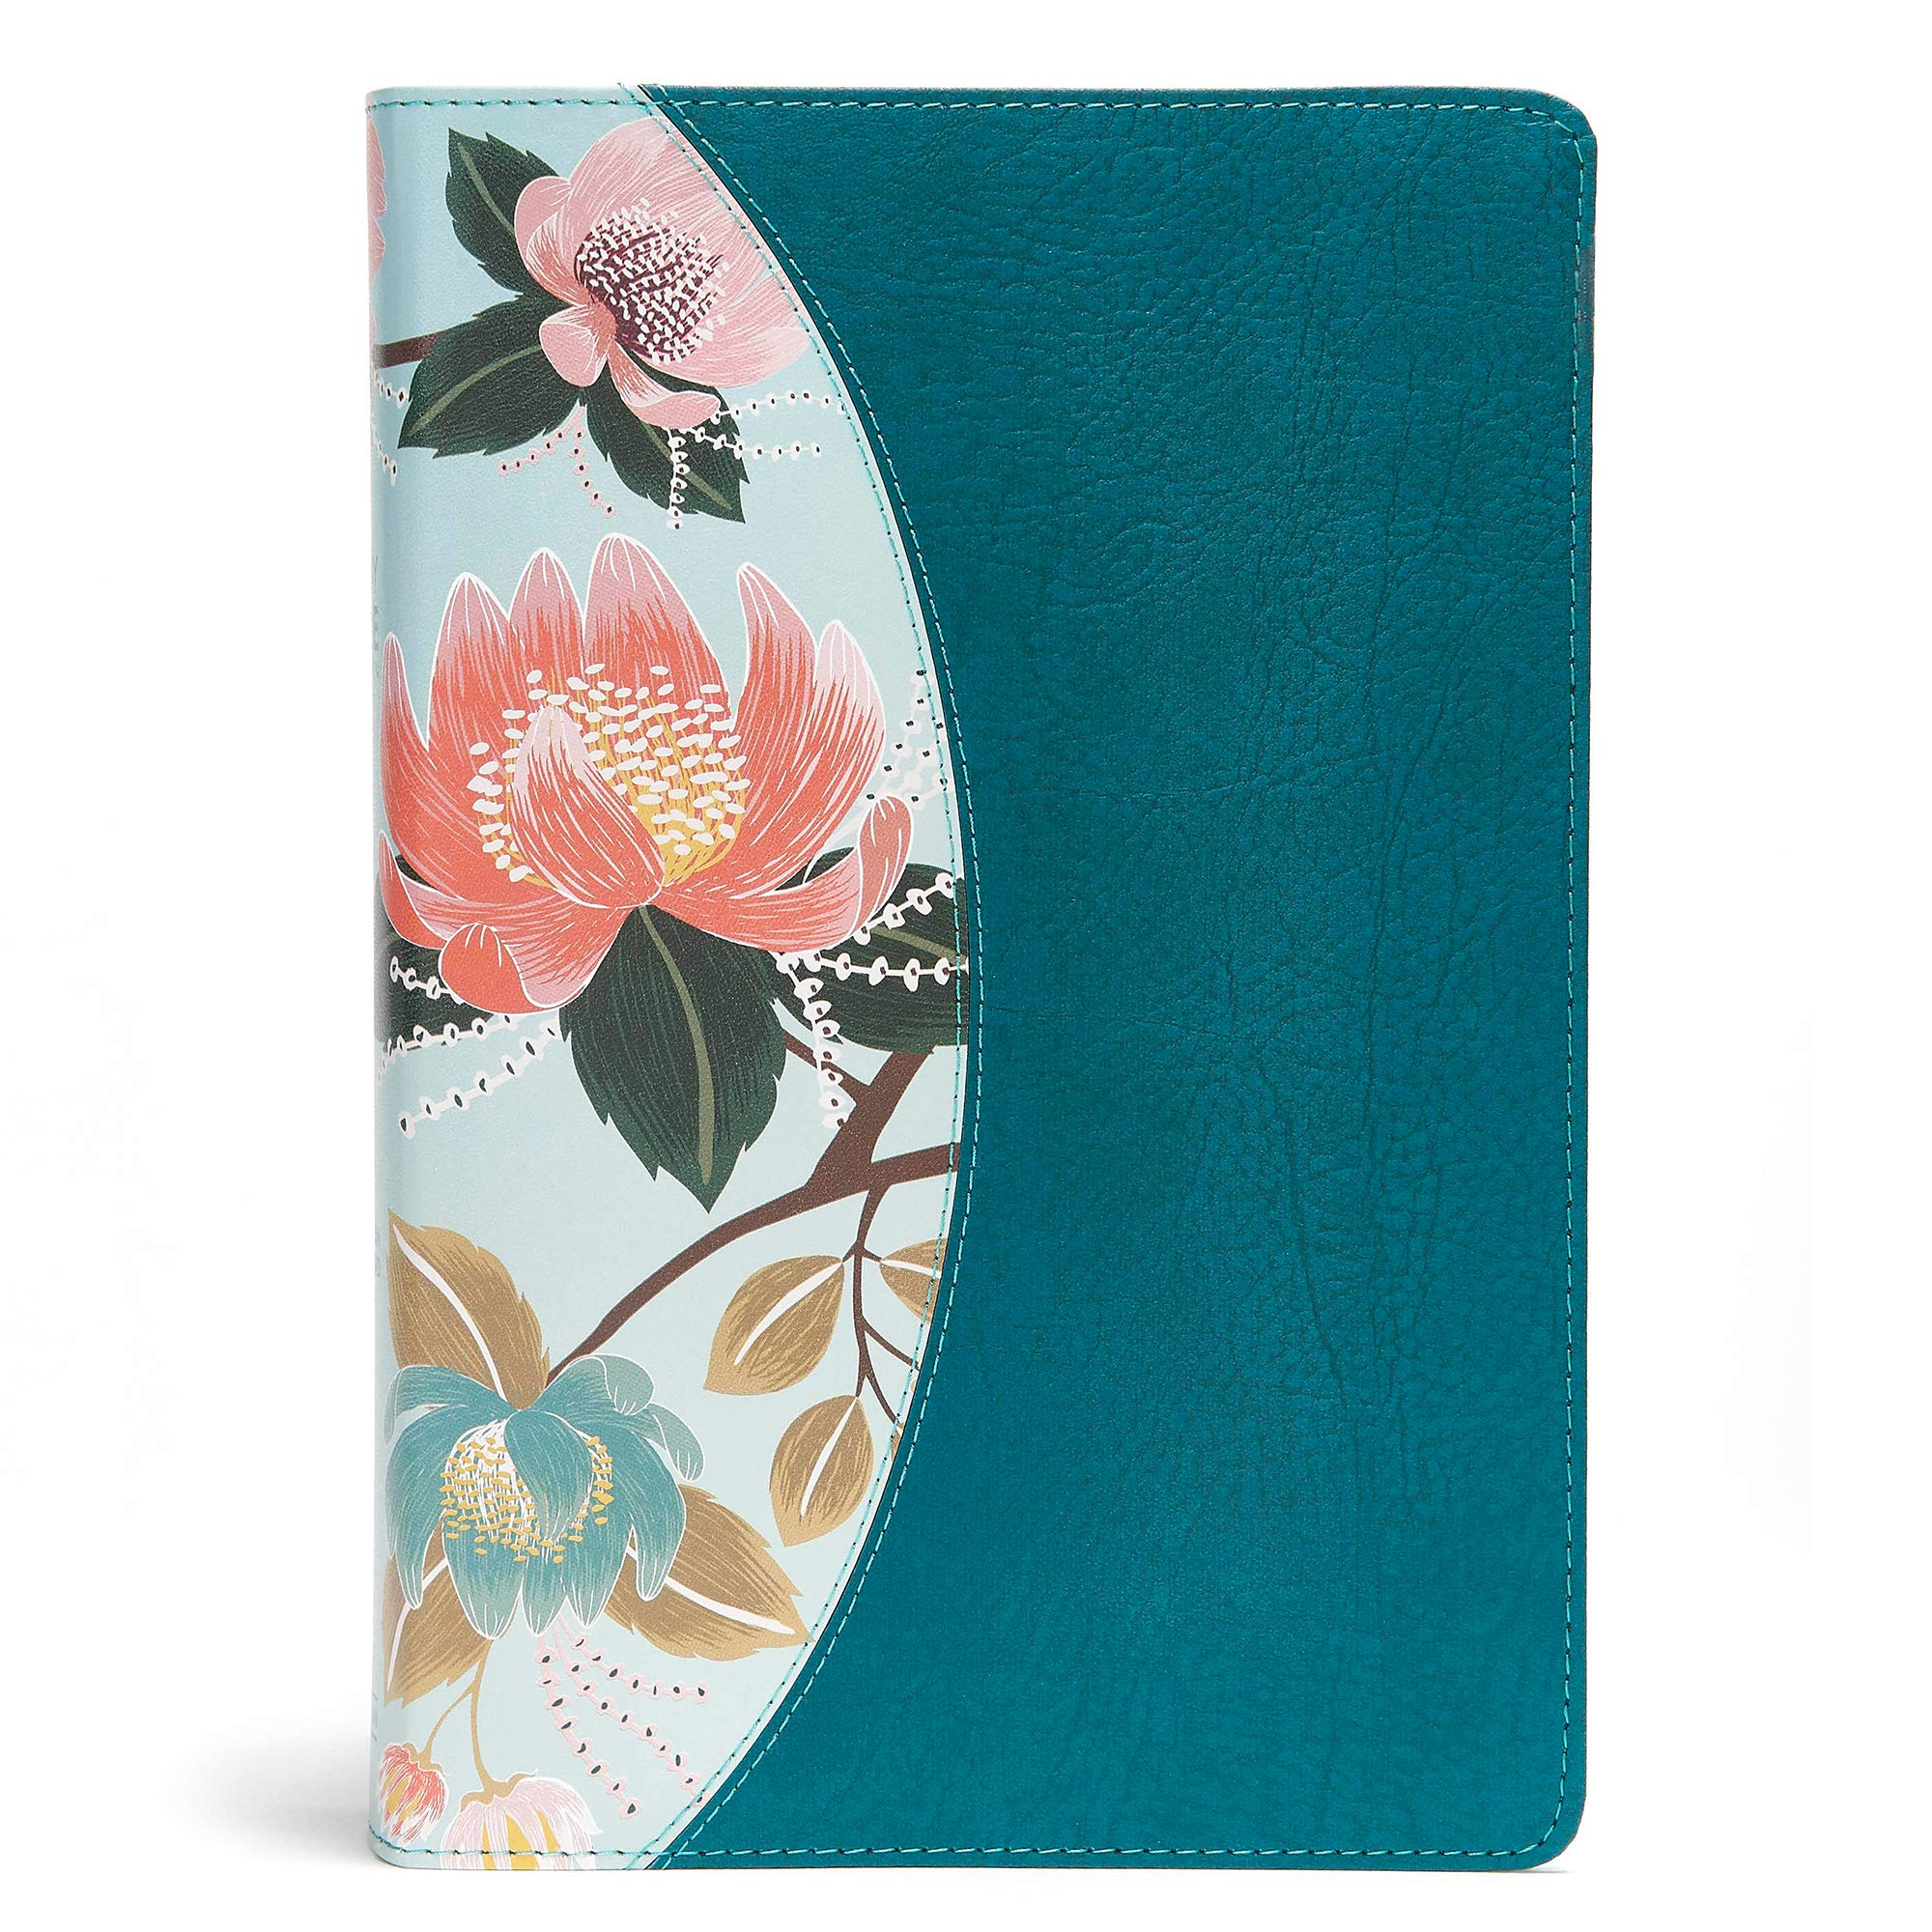 The CSB Study Bible For Women, Teal Flowers LeatherTouch, Indexed by B & H Publishing Group